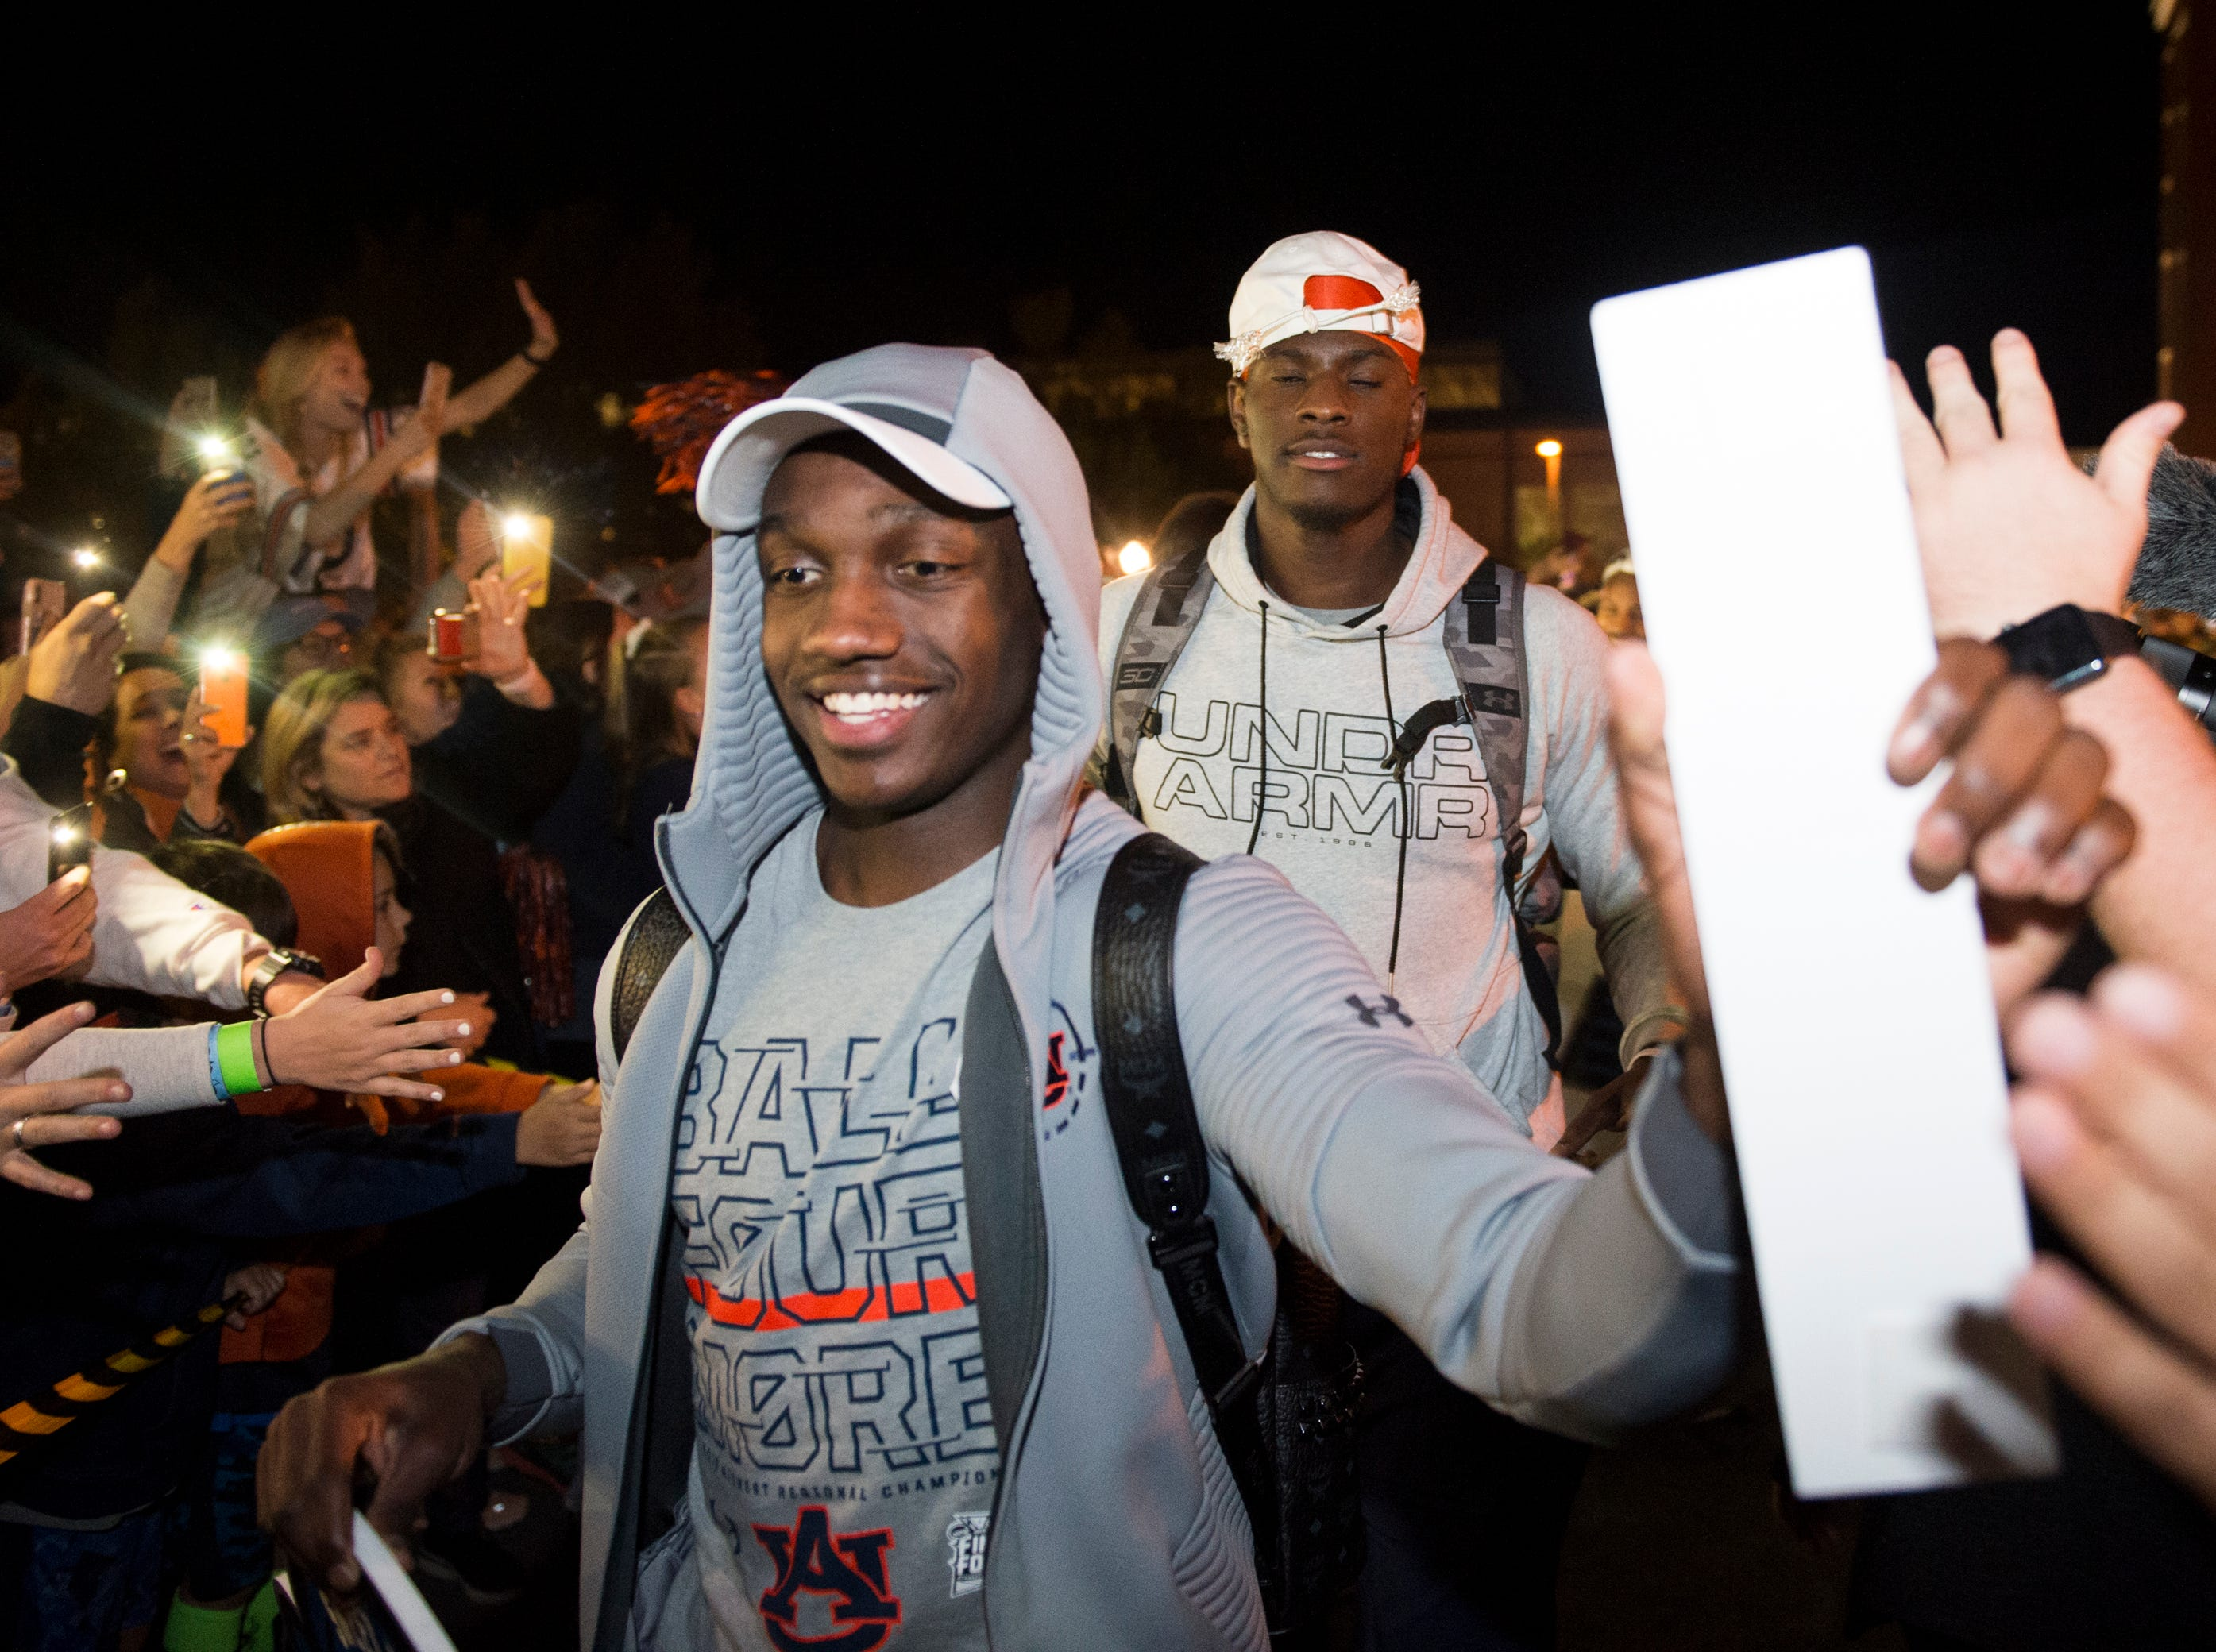 Auburn guard Jared Harper (1) greets fans as they  welcome back the Auburn basketball team after the team's Elite Eight win outside Auburn Arena in Auburn, Ala., on Sunday, March 31, 2019.